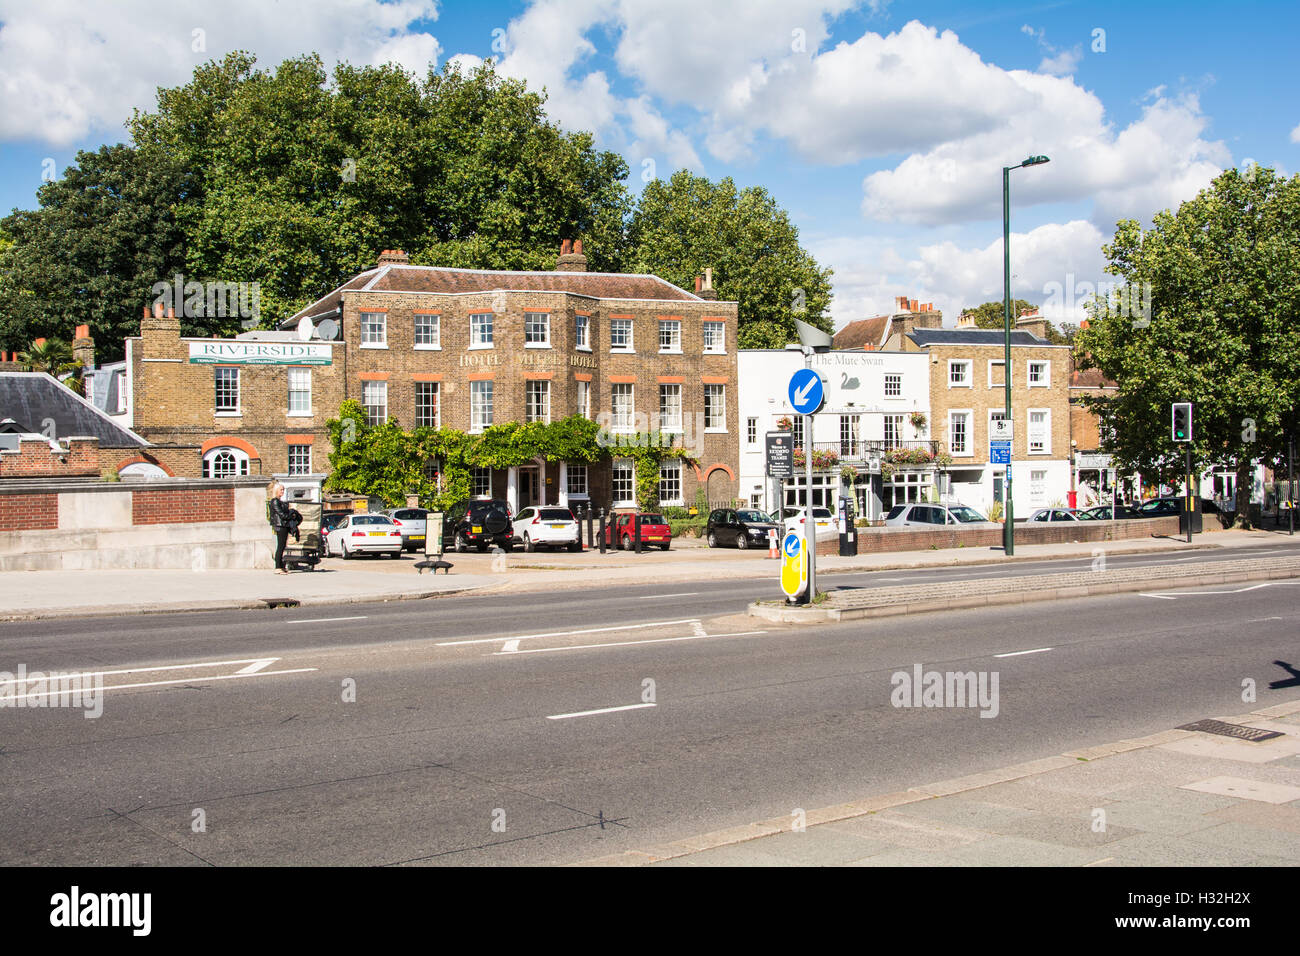 The Mitre Hotel on the River Thames at East Molesey, opposite Hampton Court Palace, Surrey, England, U.K. Stock Photo